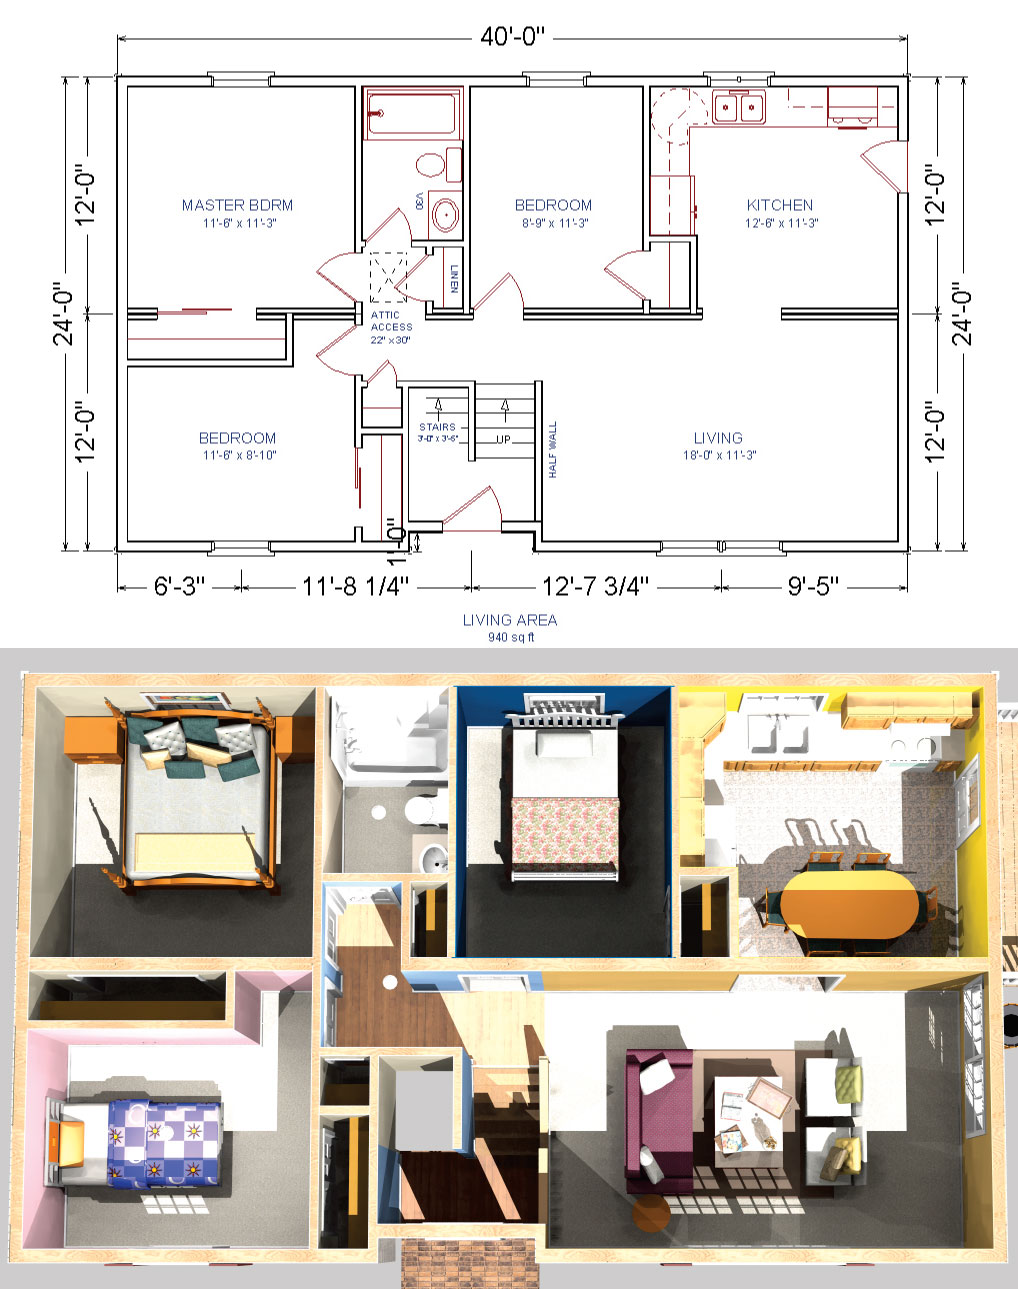 home additions floor plans latest ordinary home addition floor ranch home remodel floor plans best rambler house with home additions floor plans